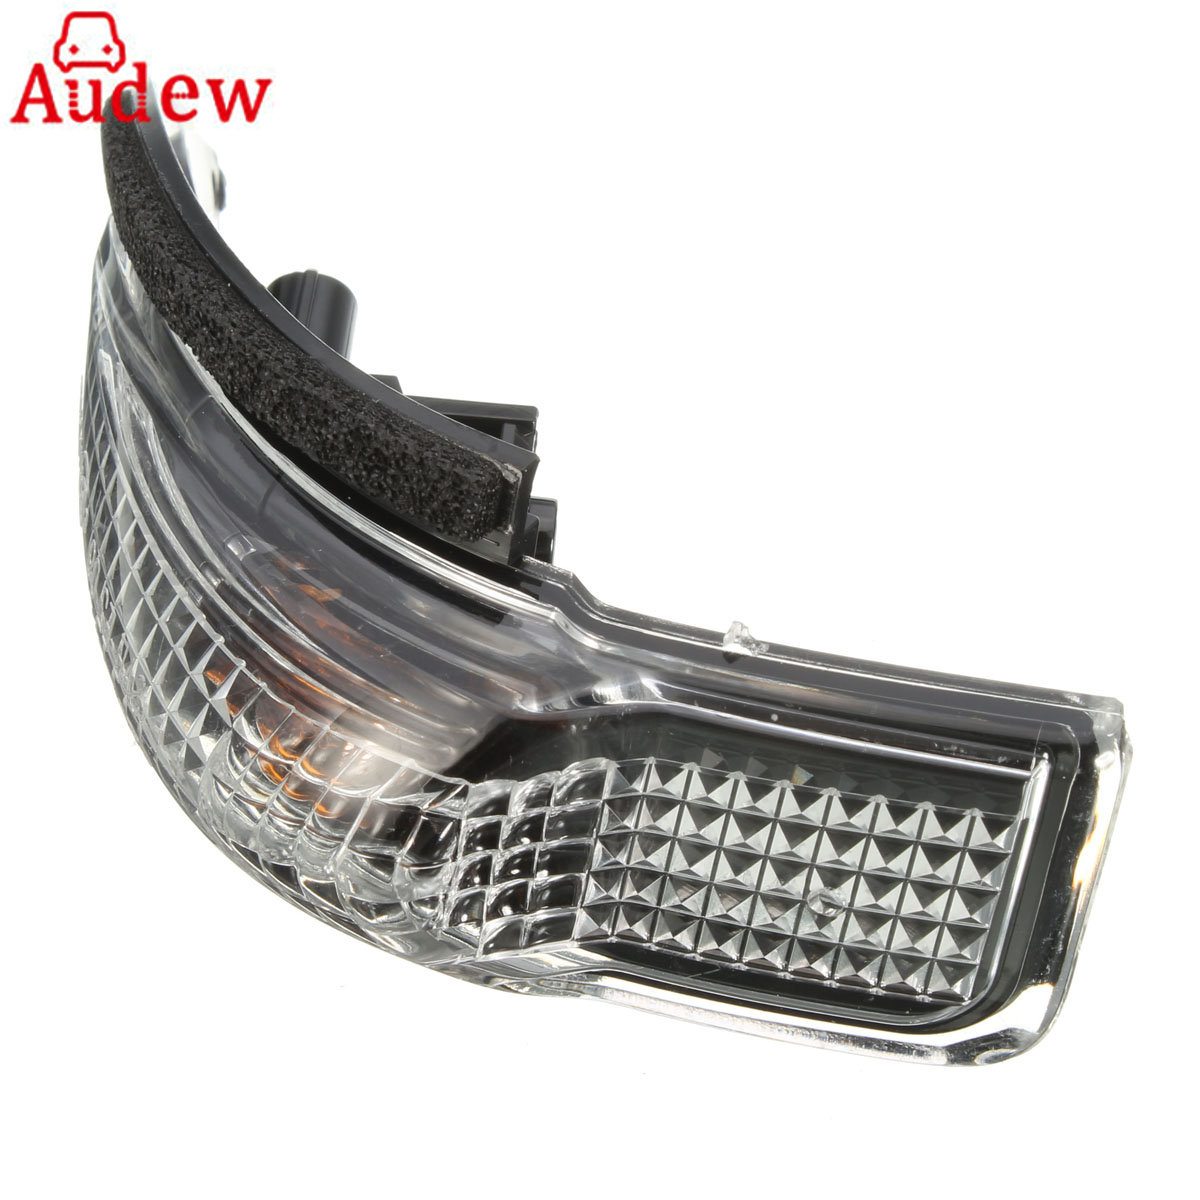 1pcs car amber light mirror side light indicator lamp left right side for toyota camry yaris 2015